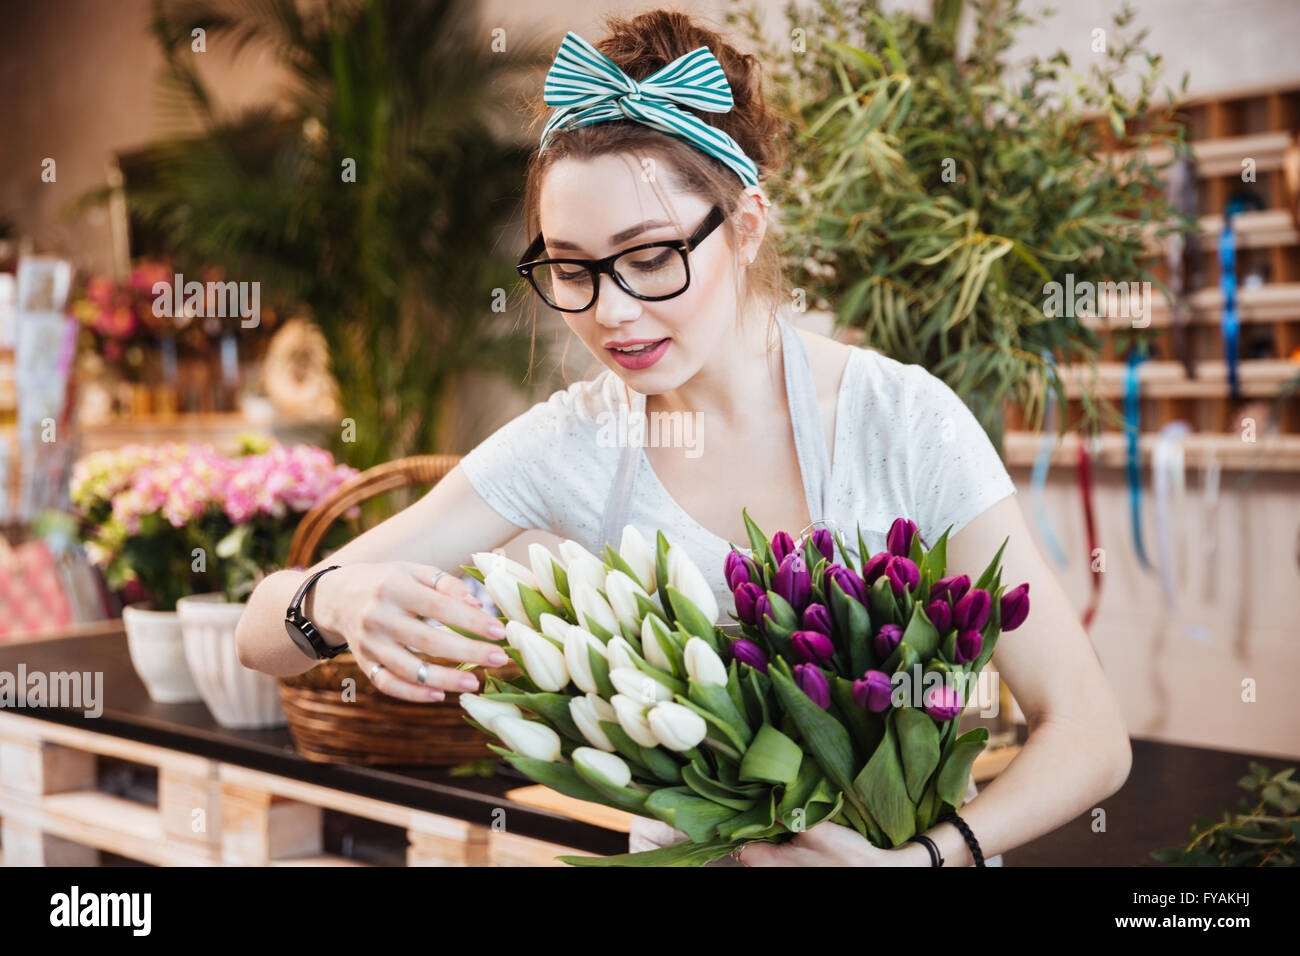 Cute lovely young woman florist in glasses taking care of tulips in flower shop - Stock Image